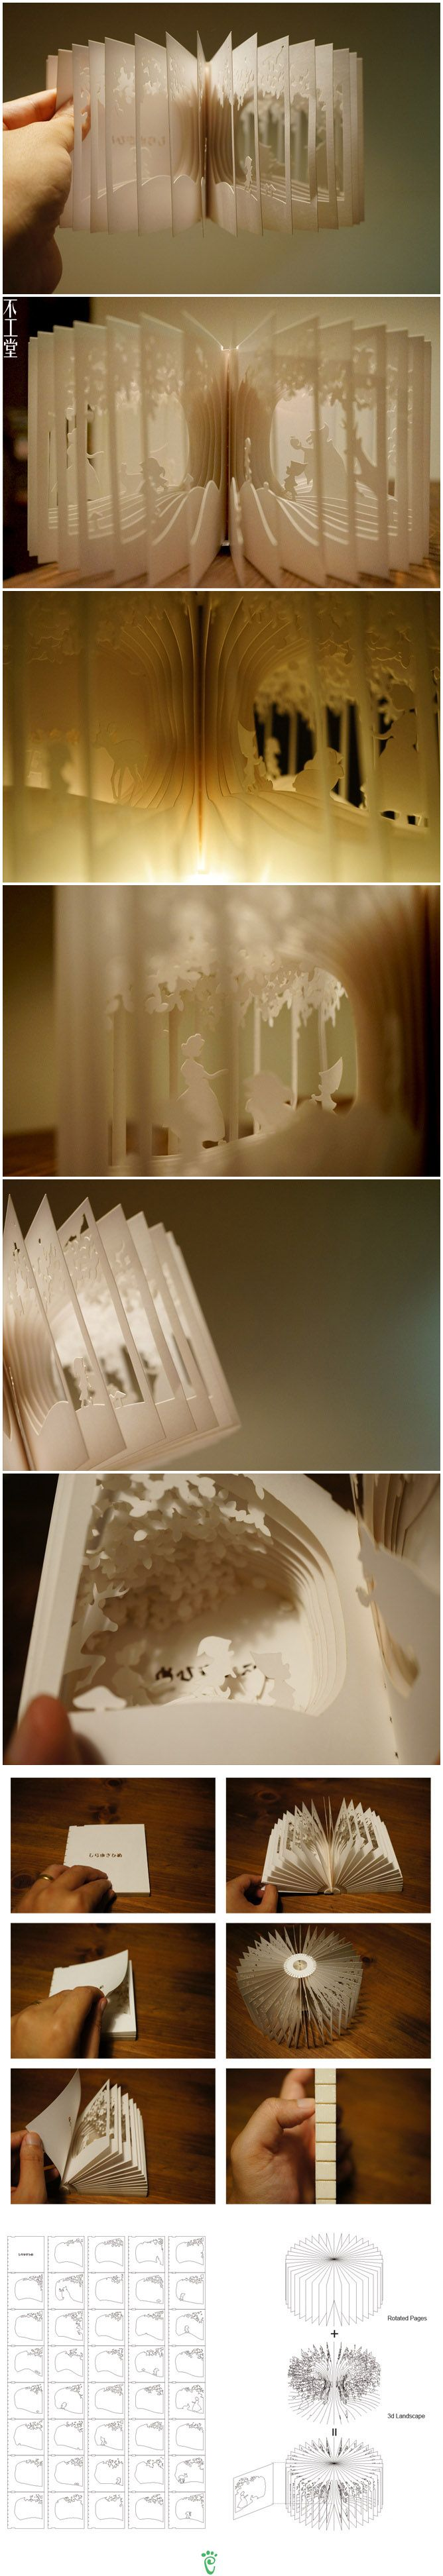 Paper book art. This is seriously jaw-dropping